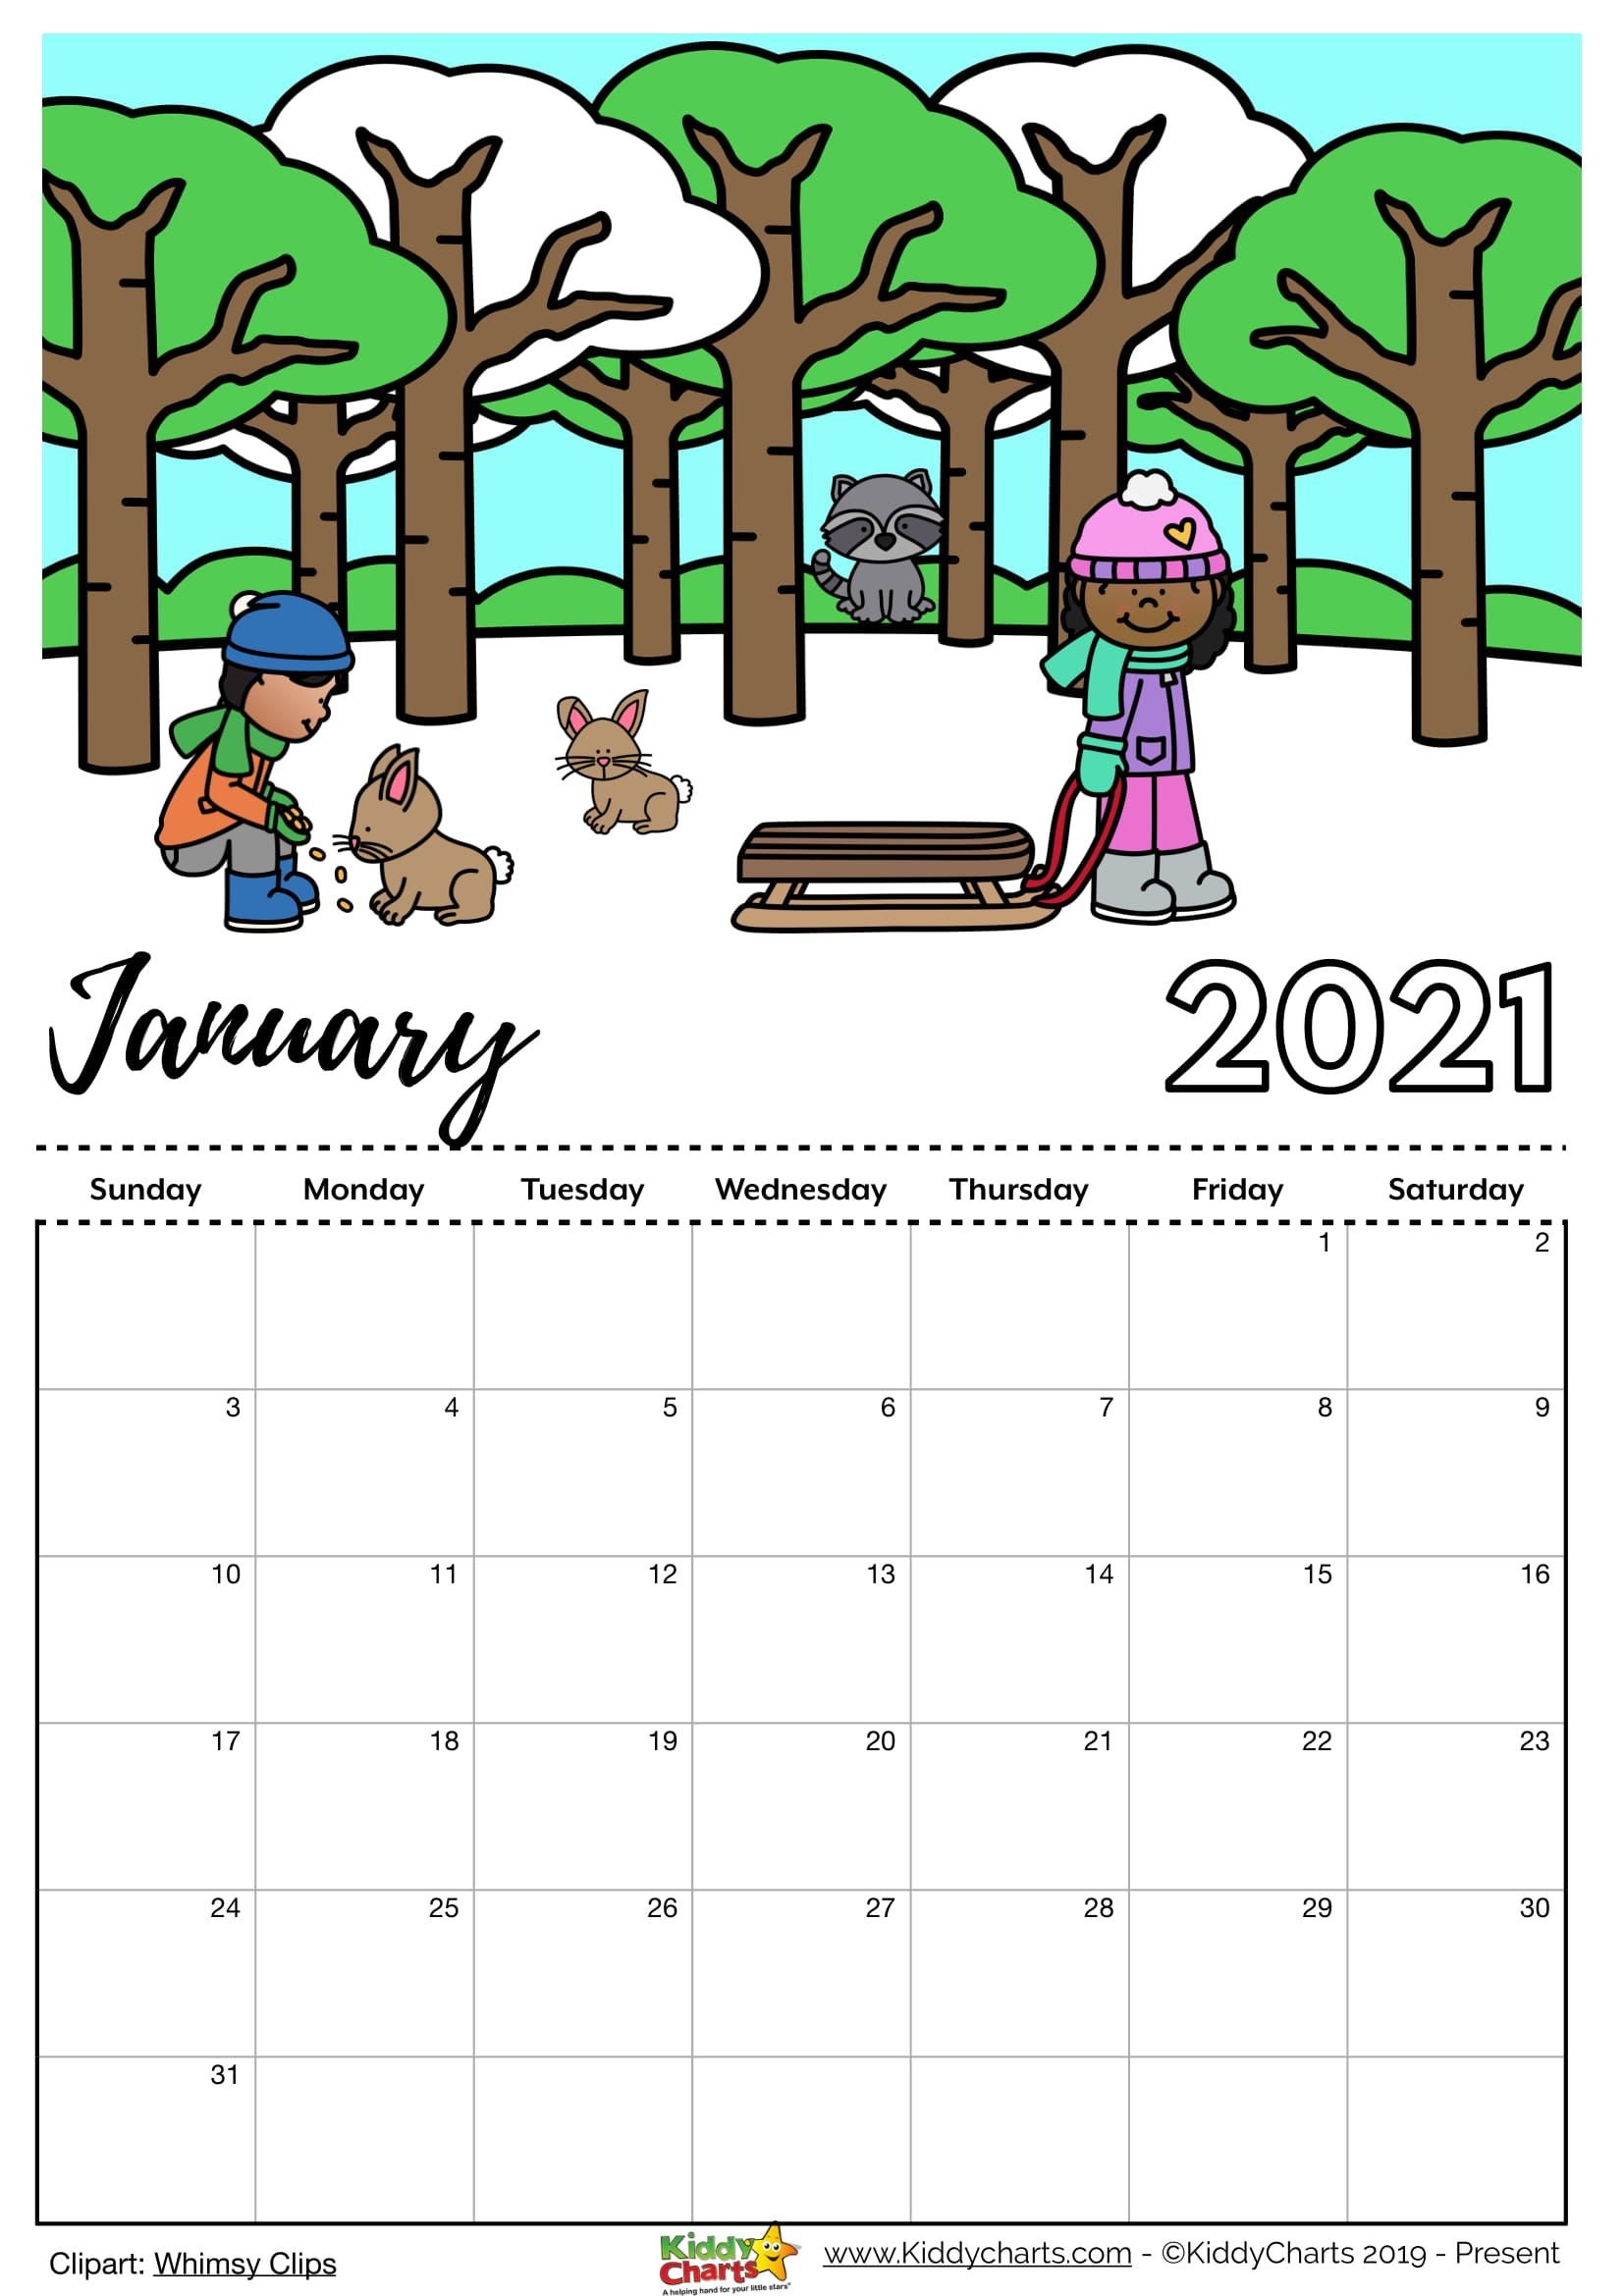 Check Our New Free Printable Calendar In